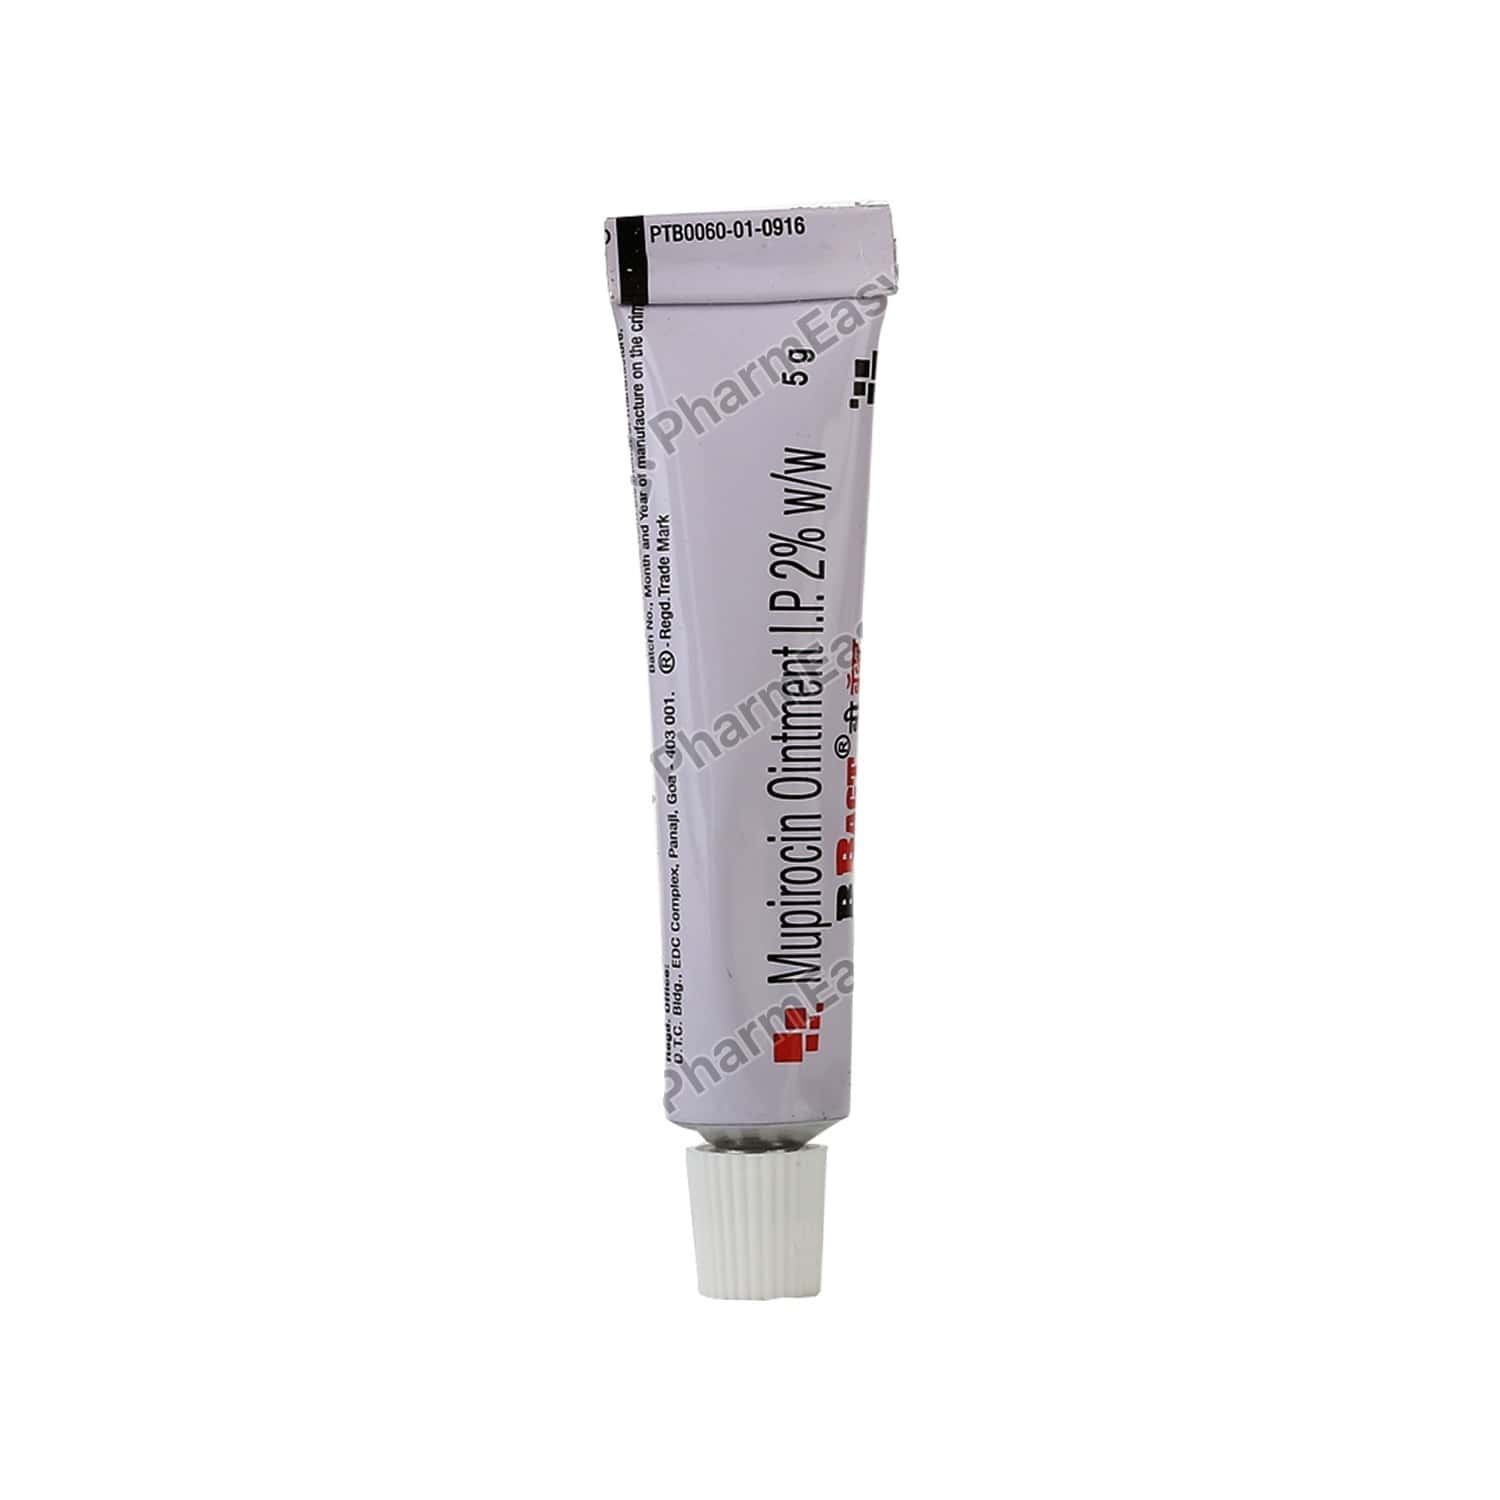 B Bact 2% Tube Of 5gm Ointment